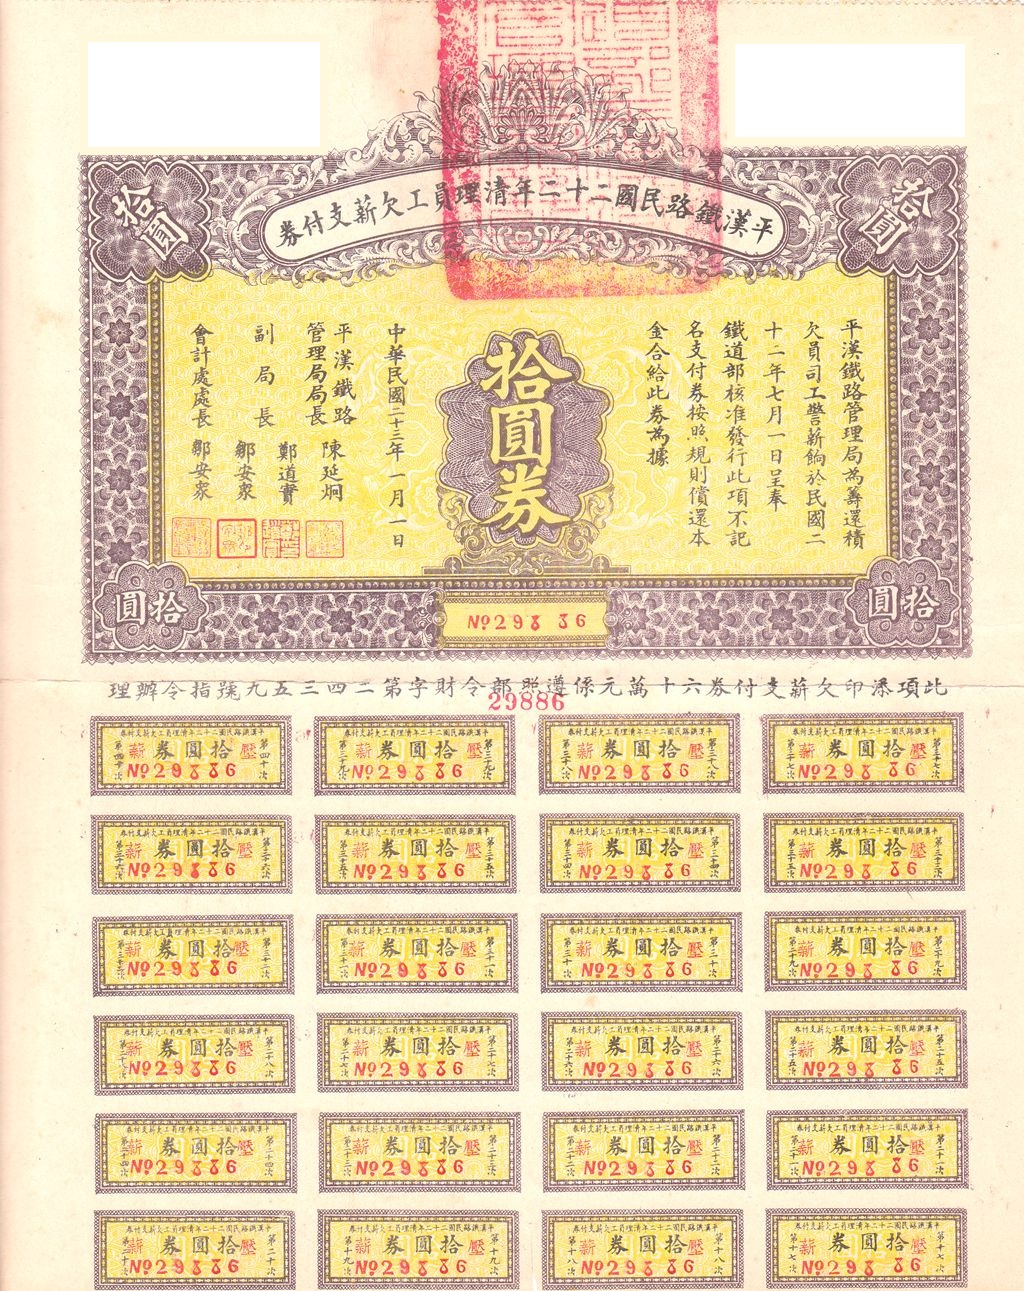 B3016, China Peking-Hankow Railway Zero-Interest Bond, 10 Dollars 1933